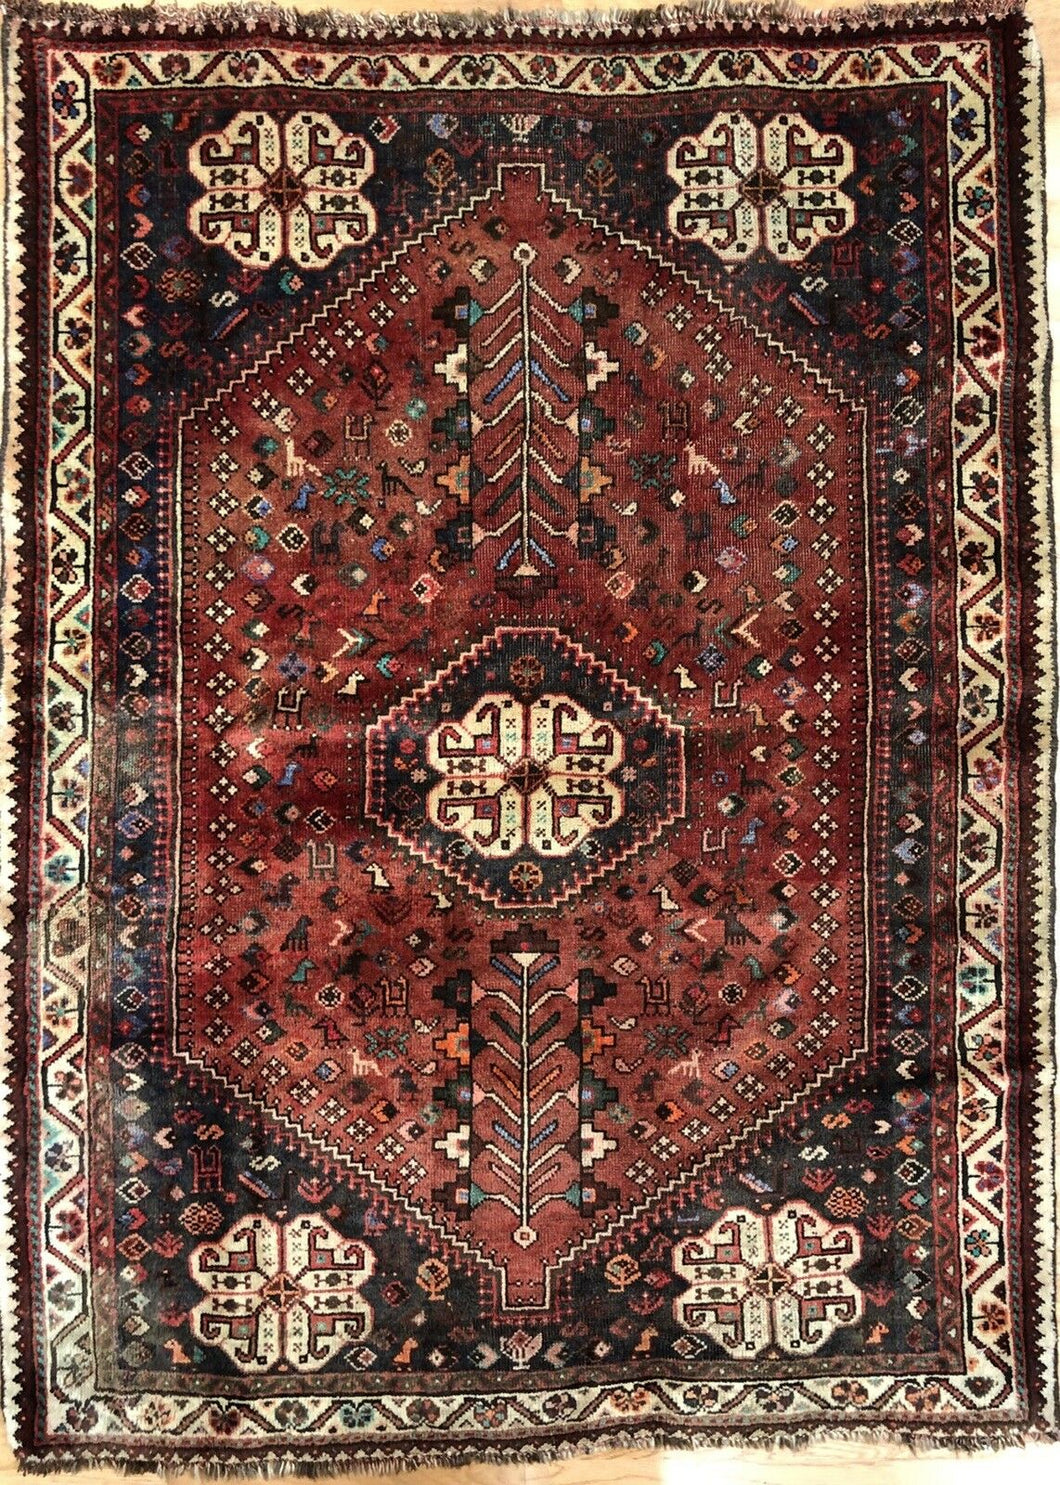 Quality Qashqai - 1940s Antique Shiraz Rug - Tribal Carpet - 3'9